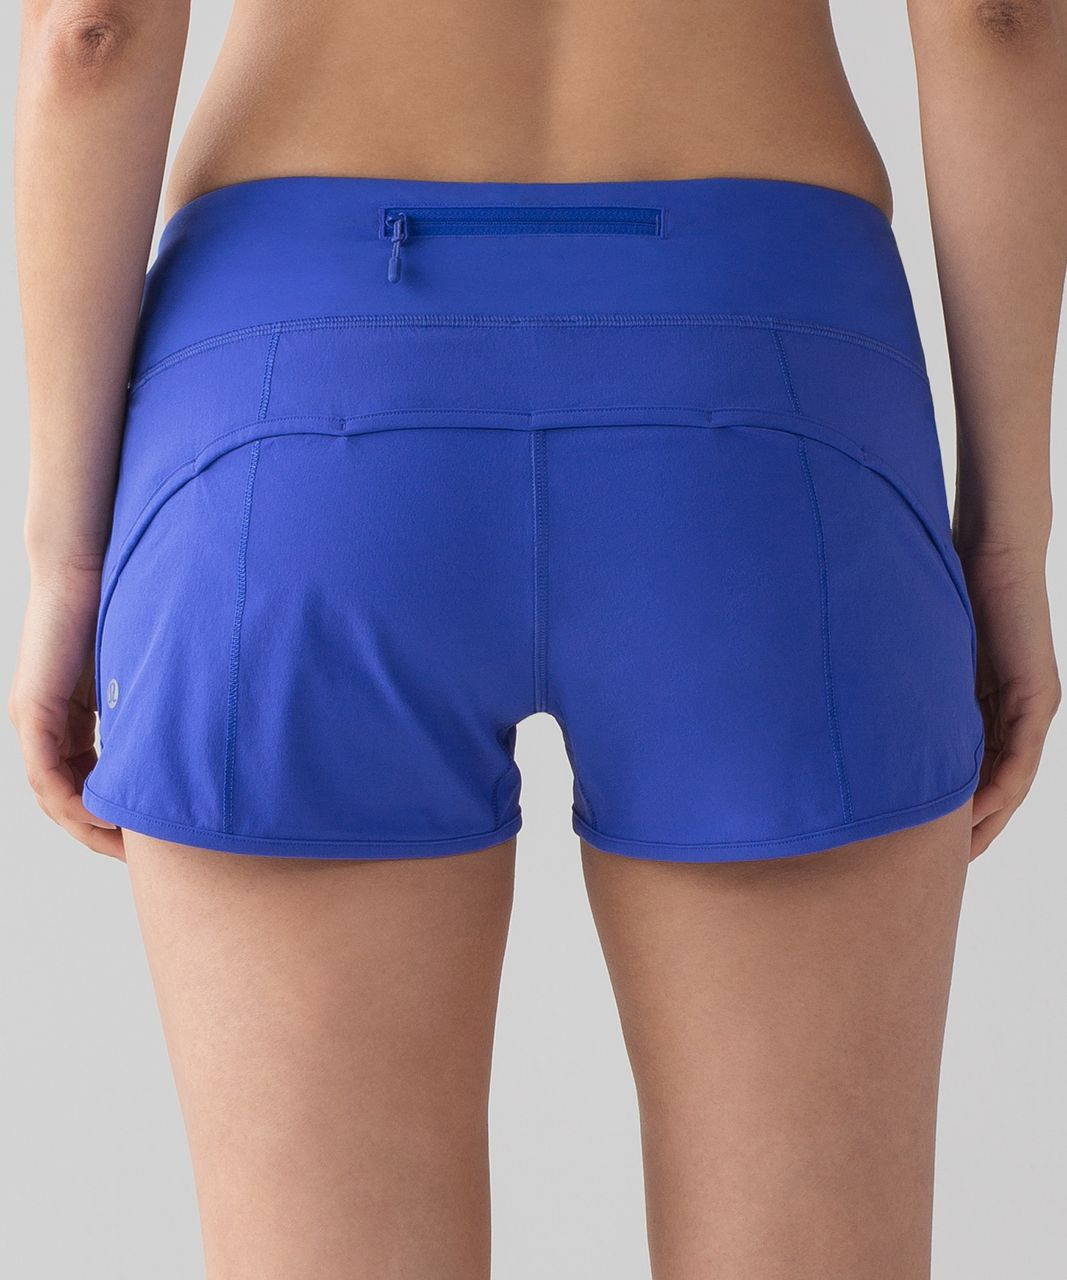 "Lululemon Speed Short (4-way Stretch 2 1/2"") - Blazer Blue"